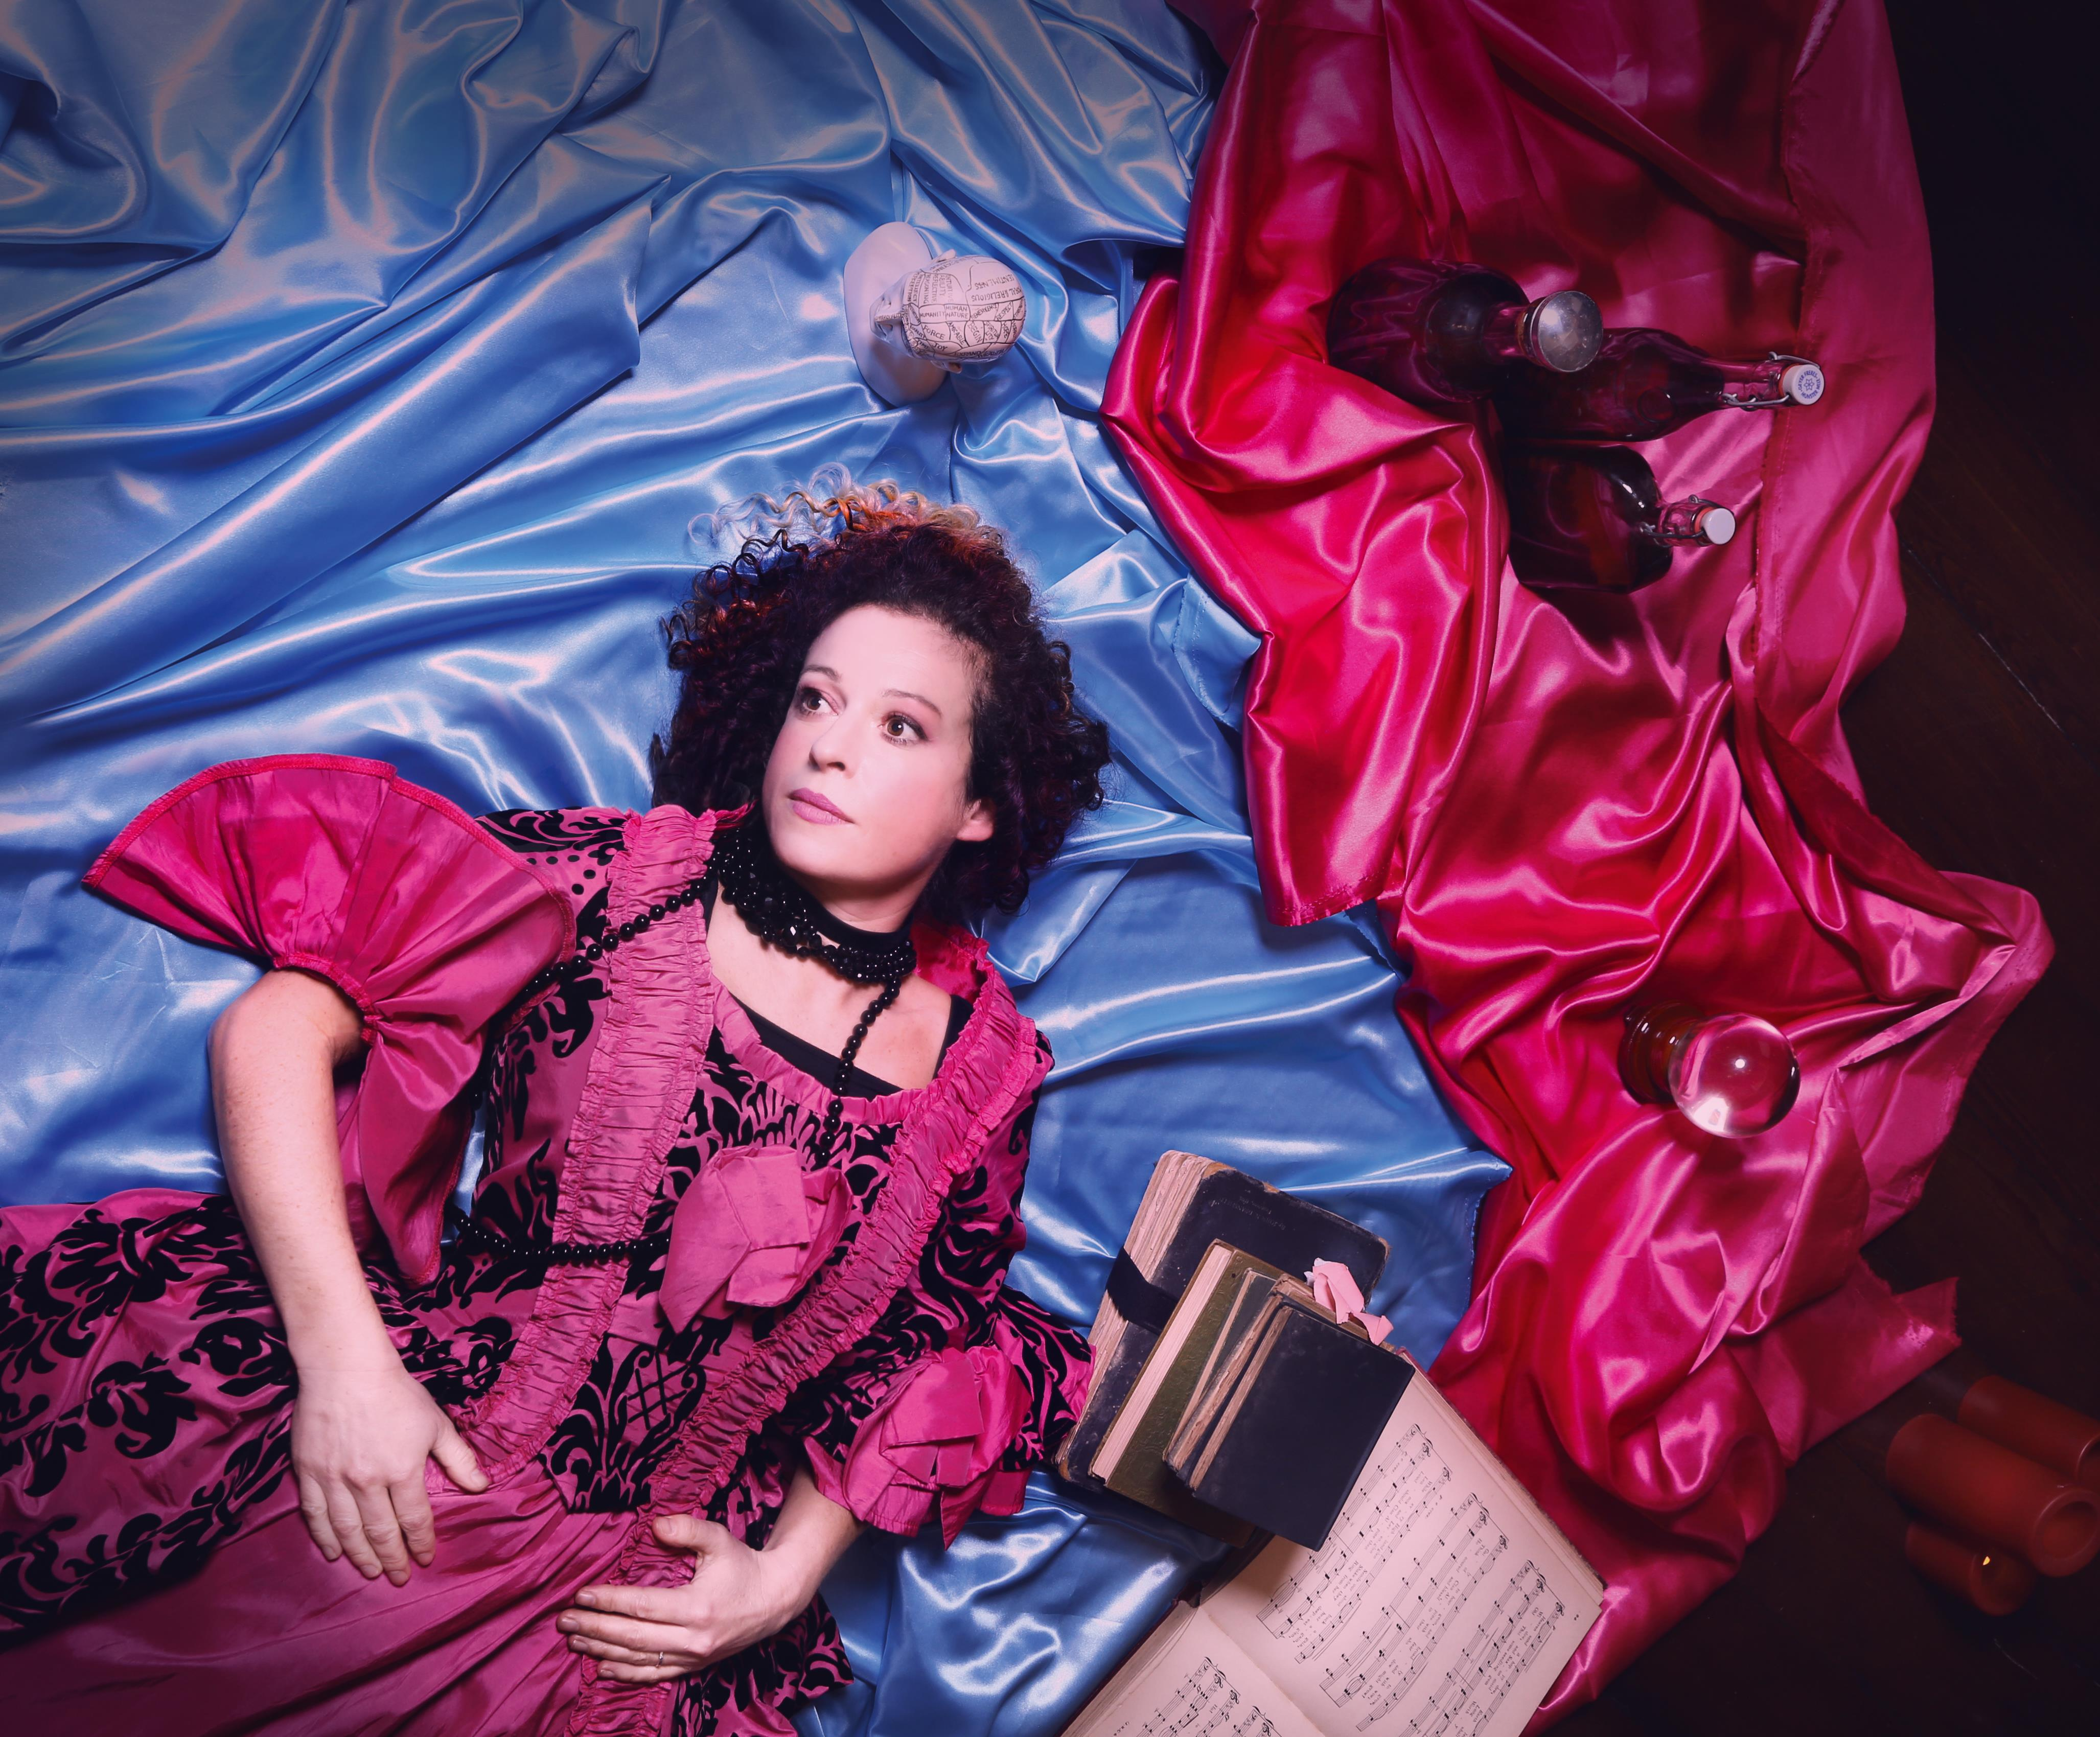 Kate rusby rsz